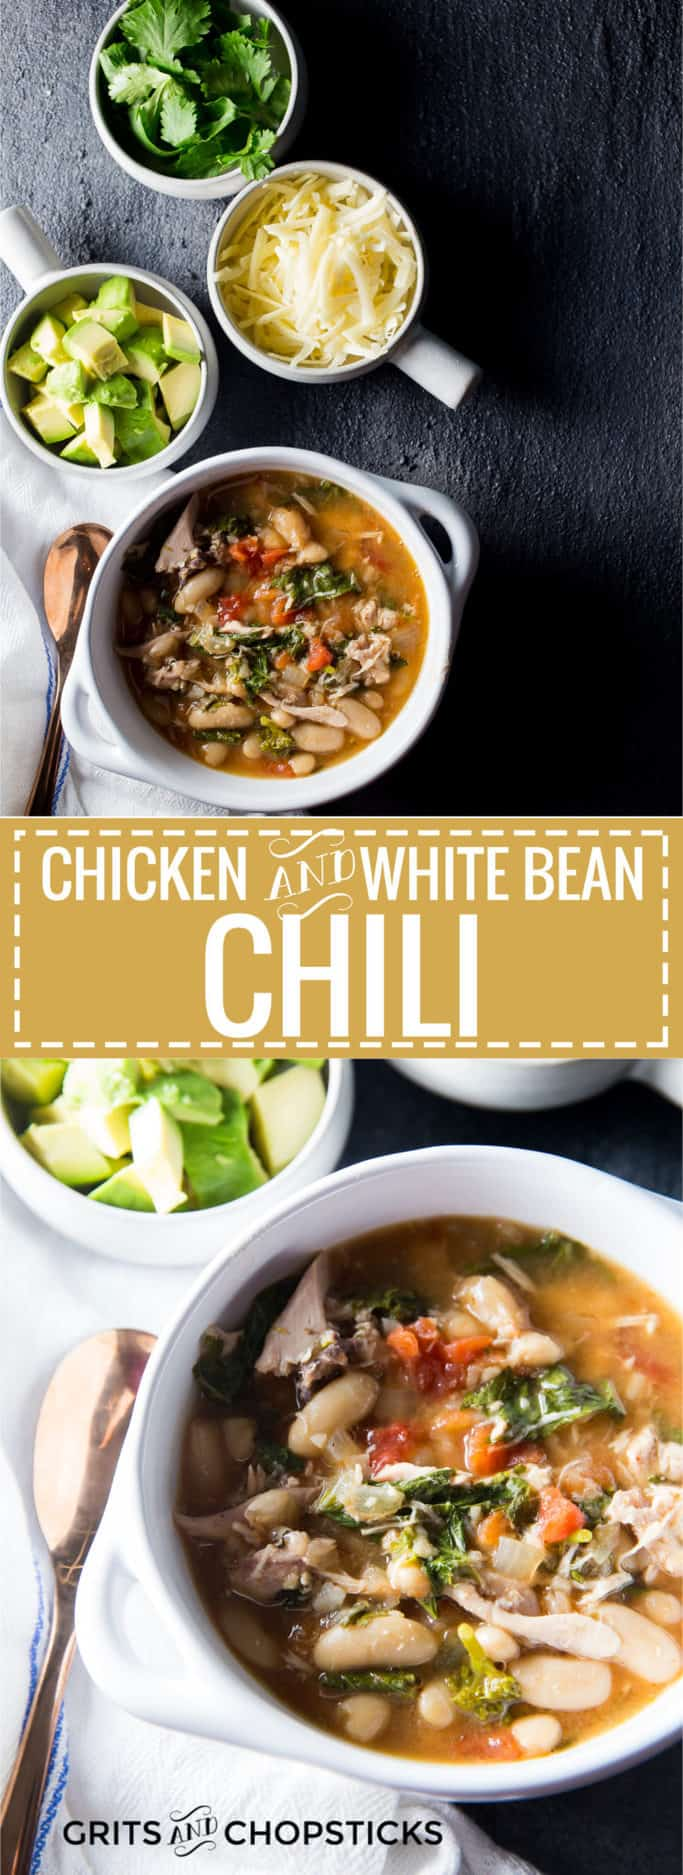 This recipe for slow cooker chicken and white bean chili with cannelini beans, tomatoes and broccoli rabe is a great comfort dinner meal for winter!